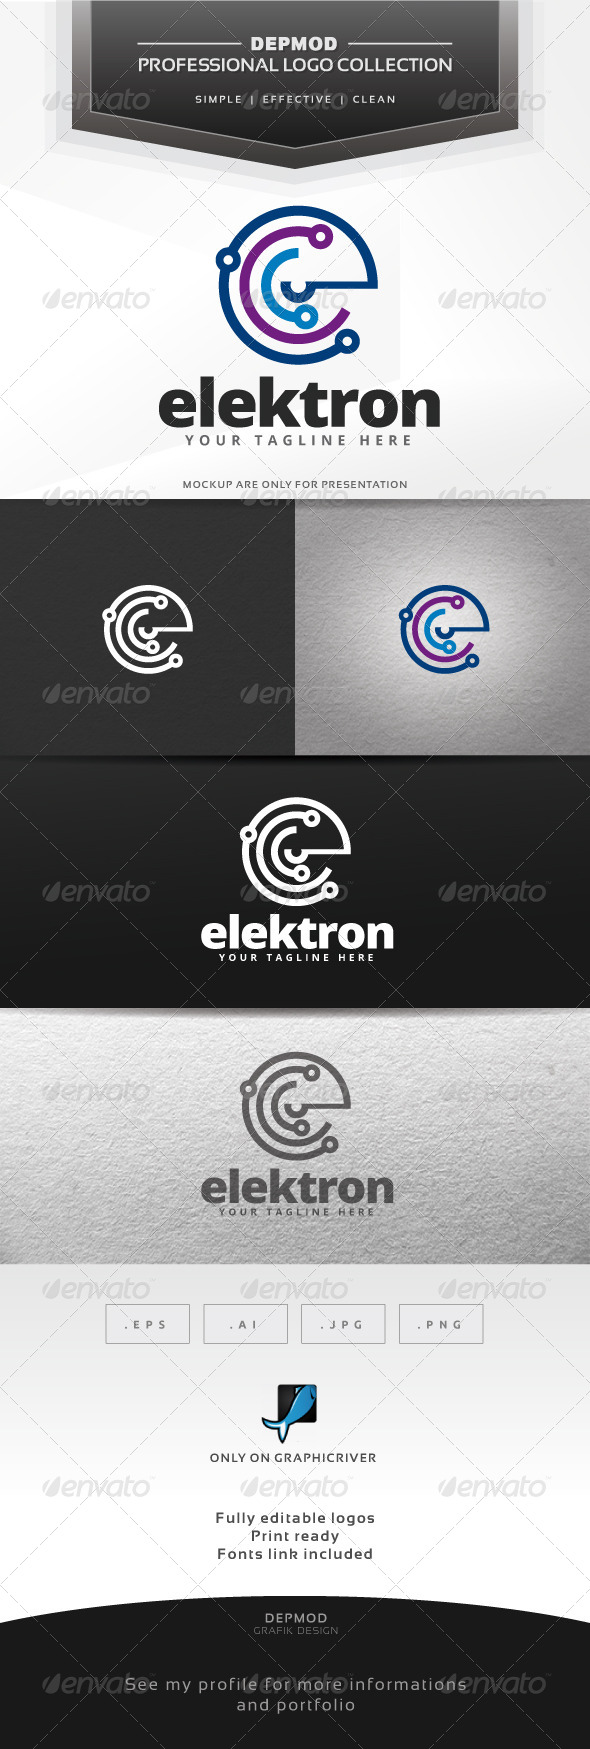 Elektron Logo - Abstract Logo Templates